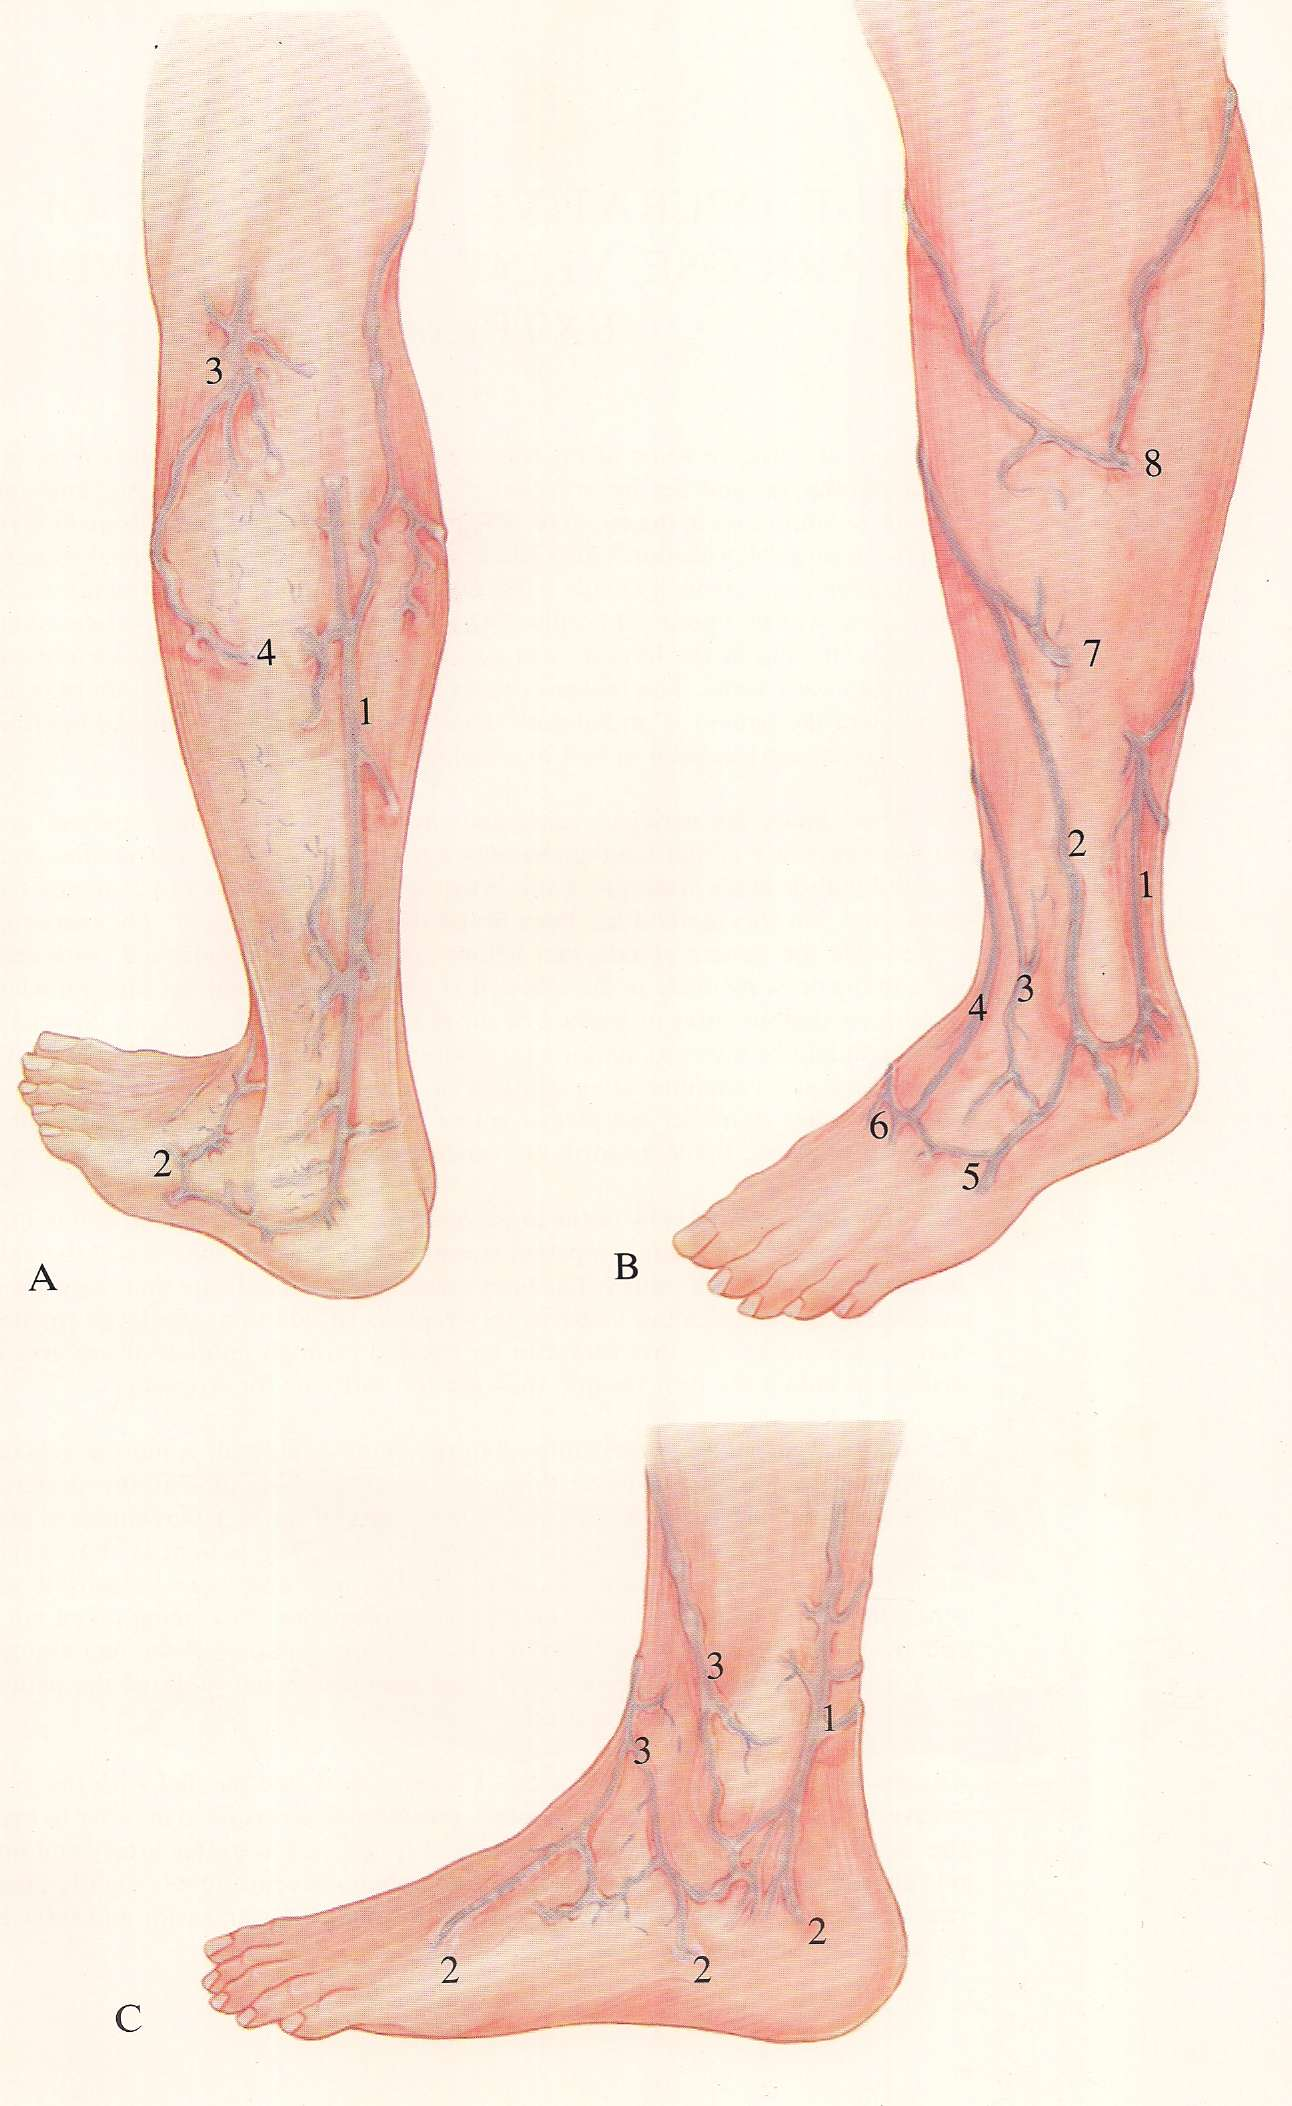 The Short Saphenous System | Varicose veins